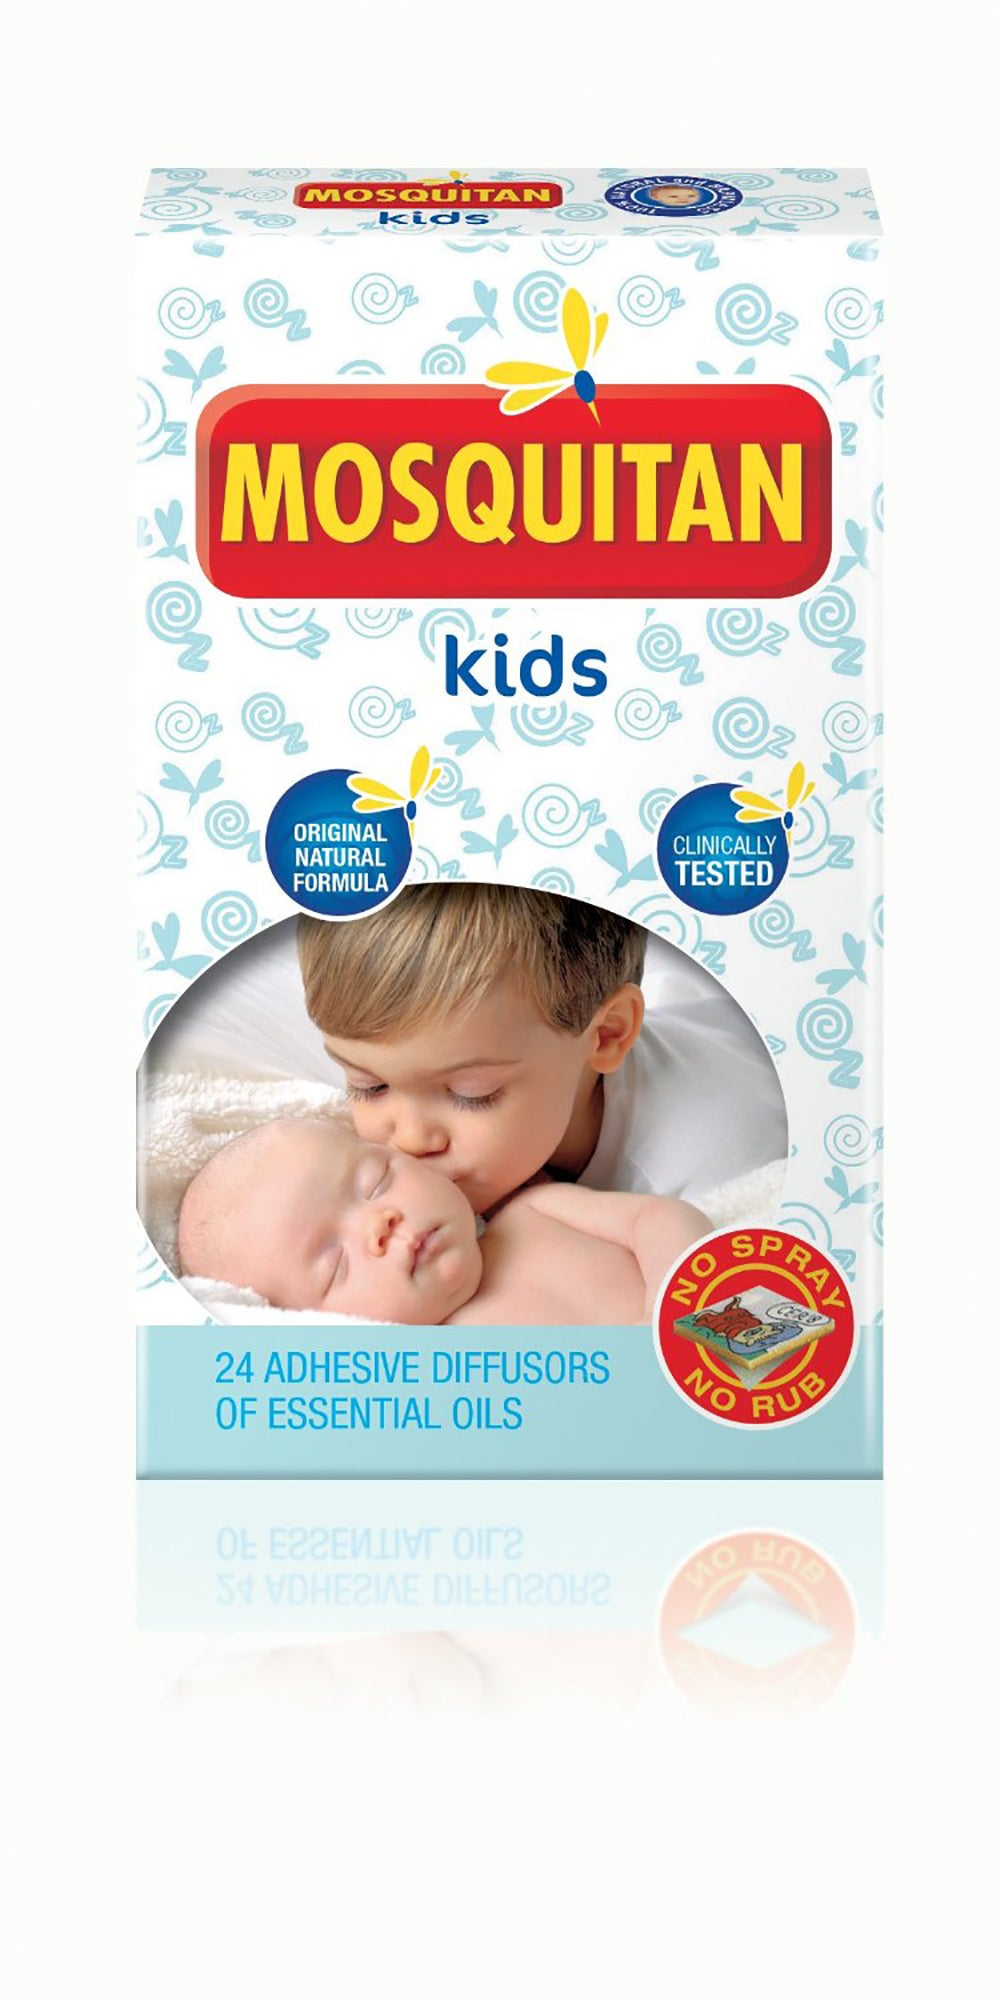 Mosquito Patches Deet Free Perfect For Kids. (24 PATCHES)